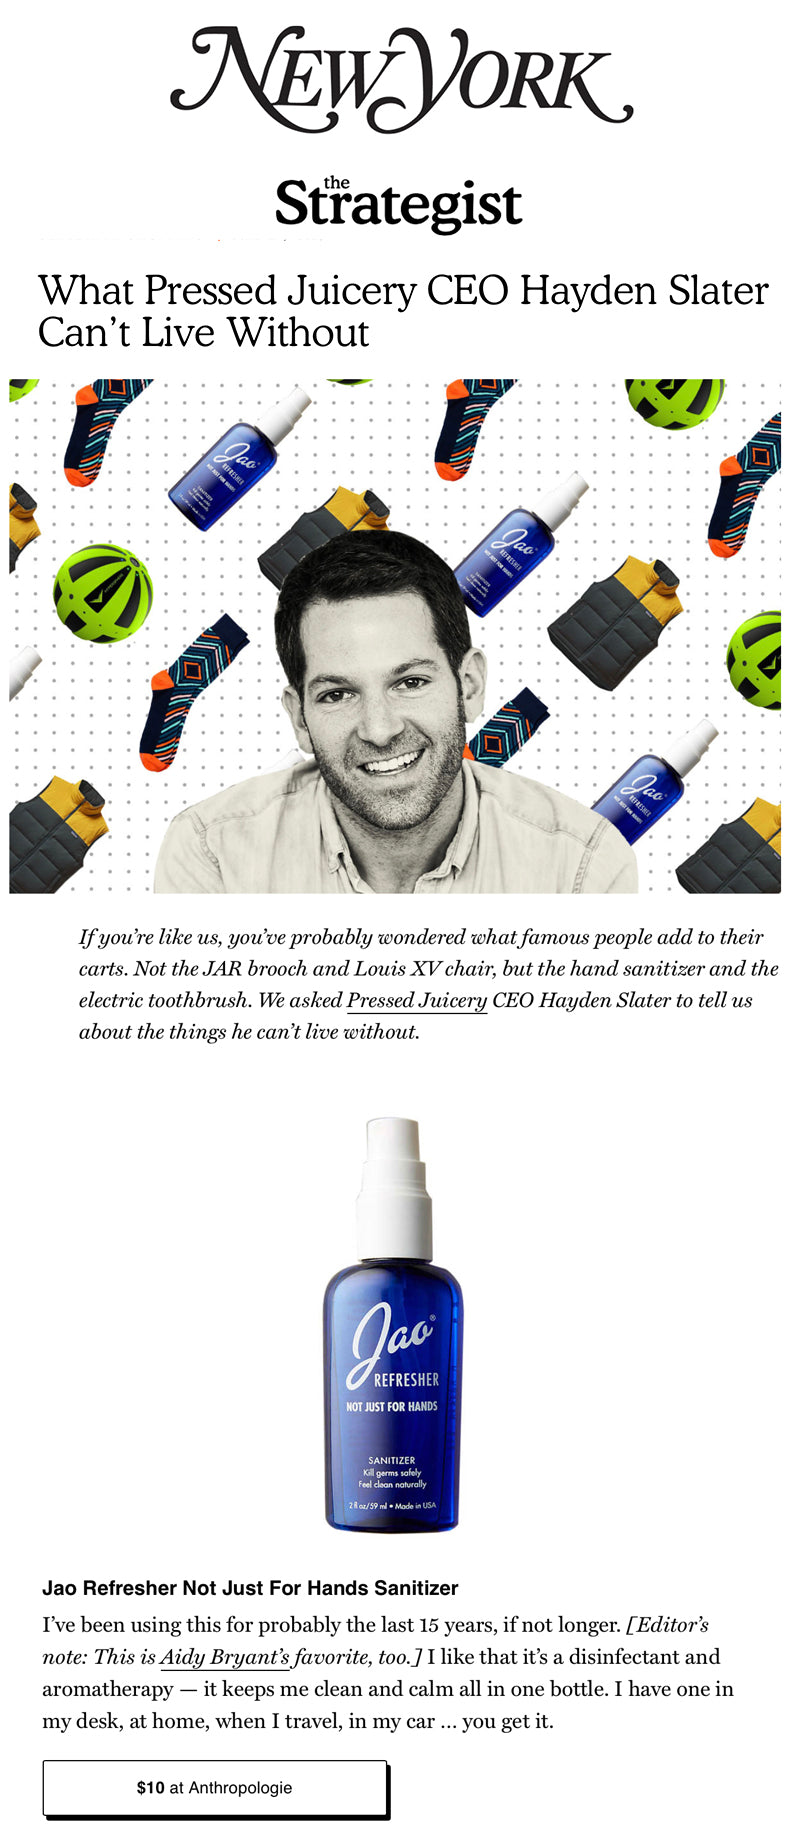 Jao Brand Hand Refresher Sanitizer: NY Magazine Pressed Juicery CEO Hayden Slater